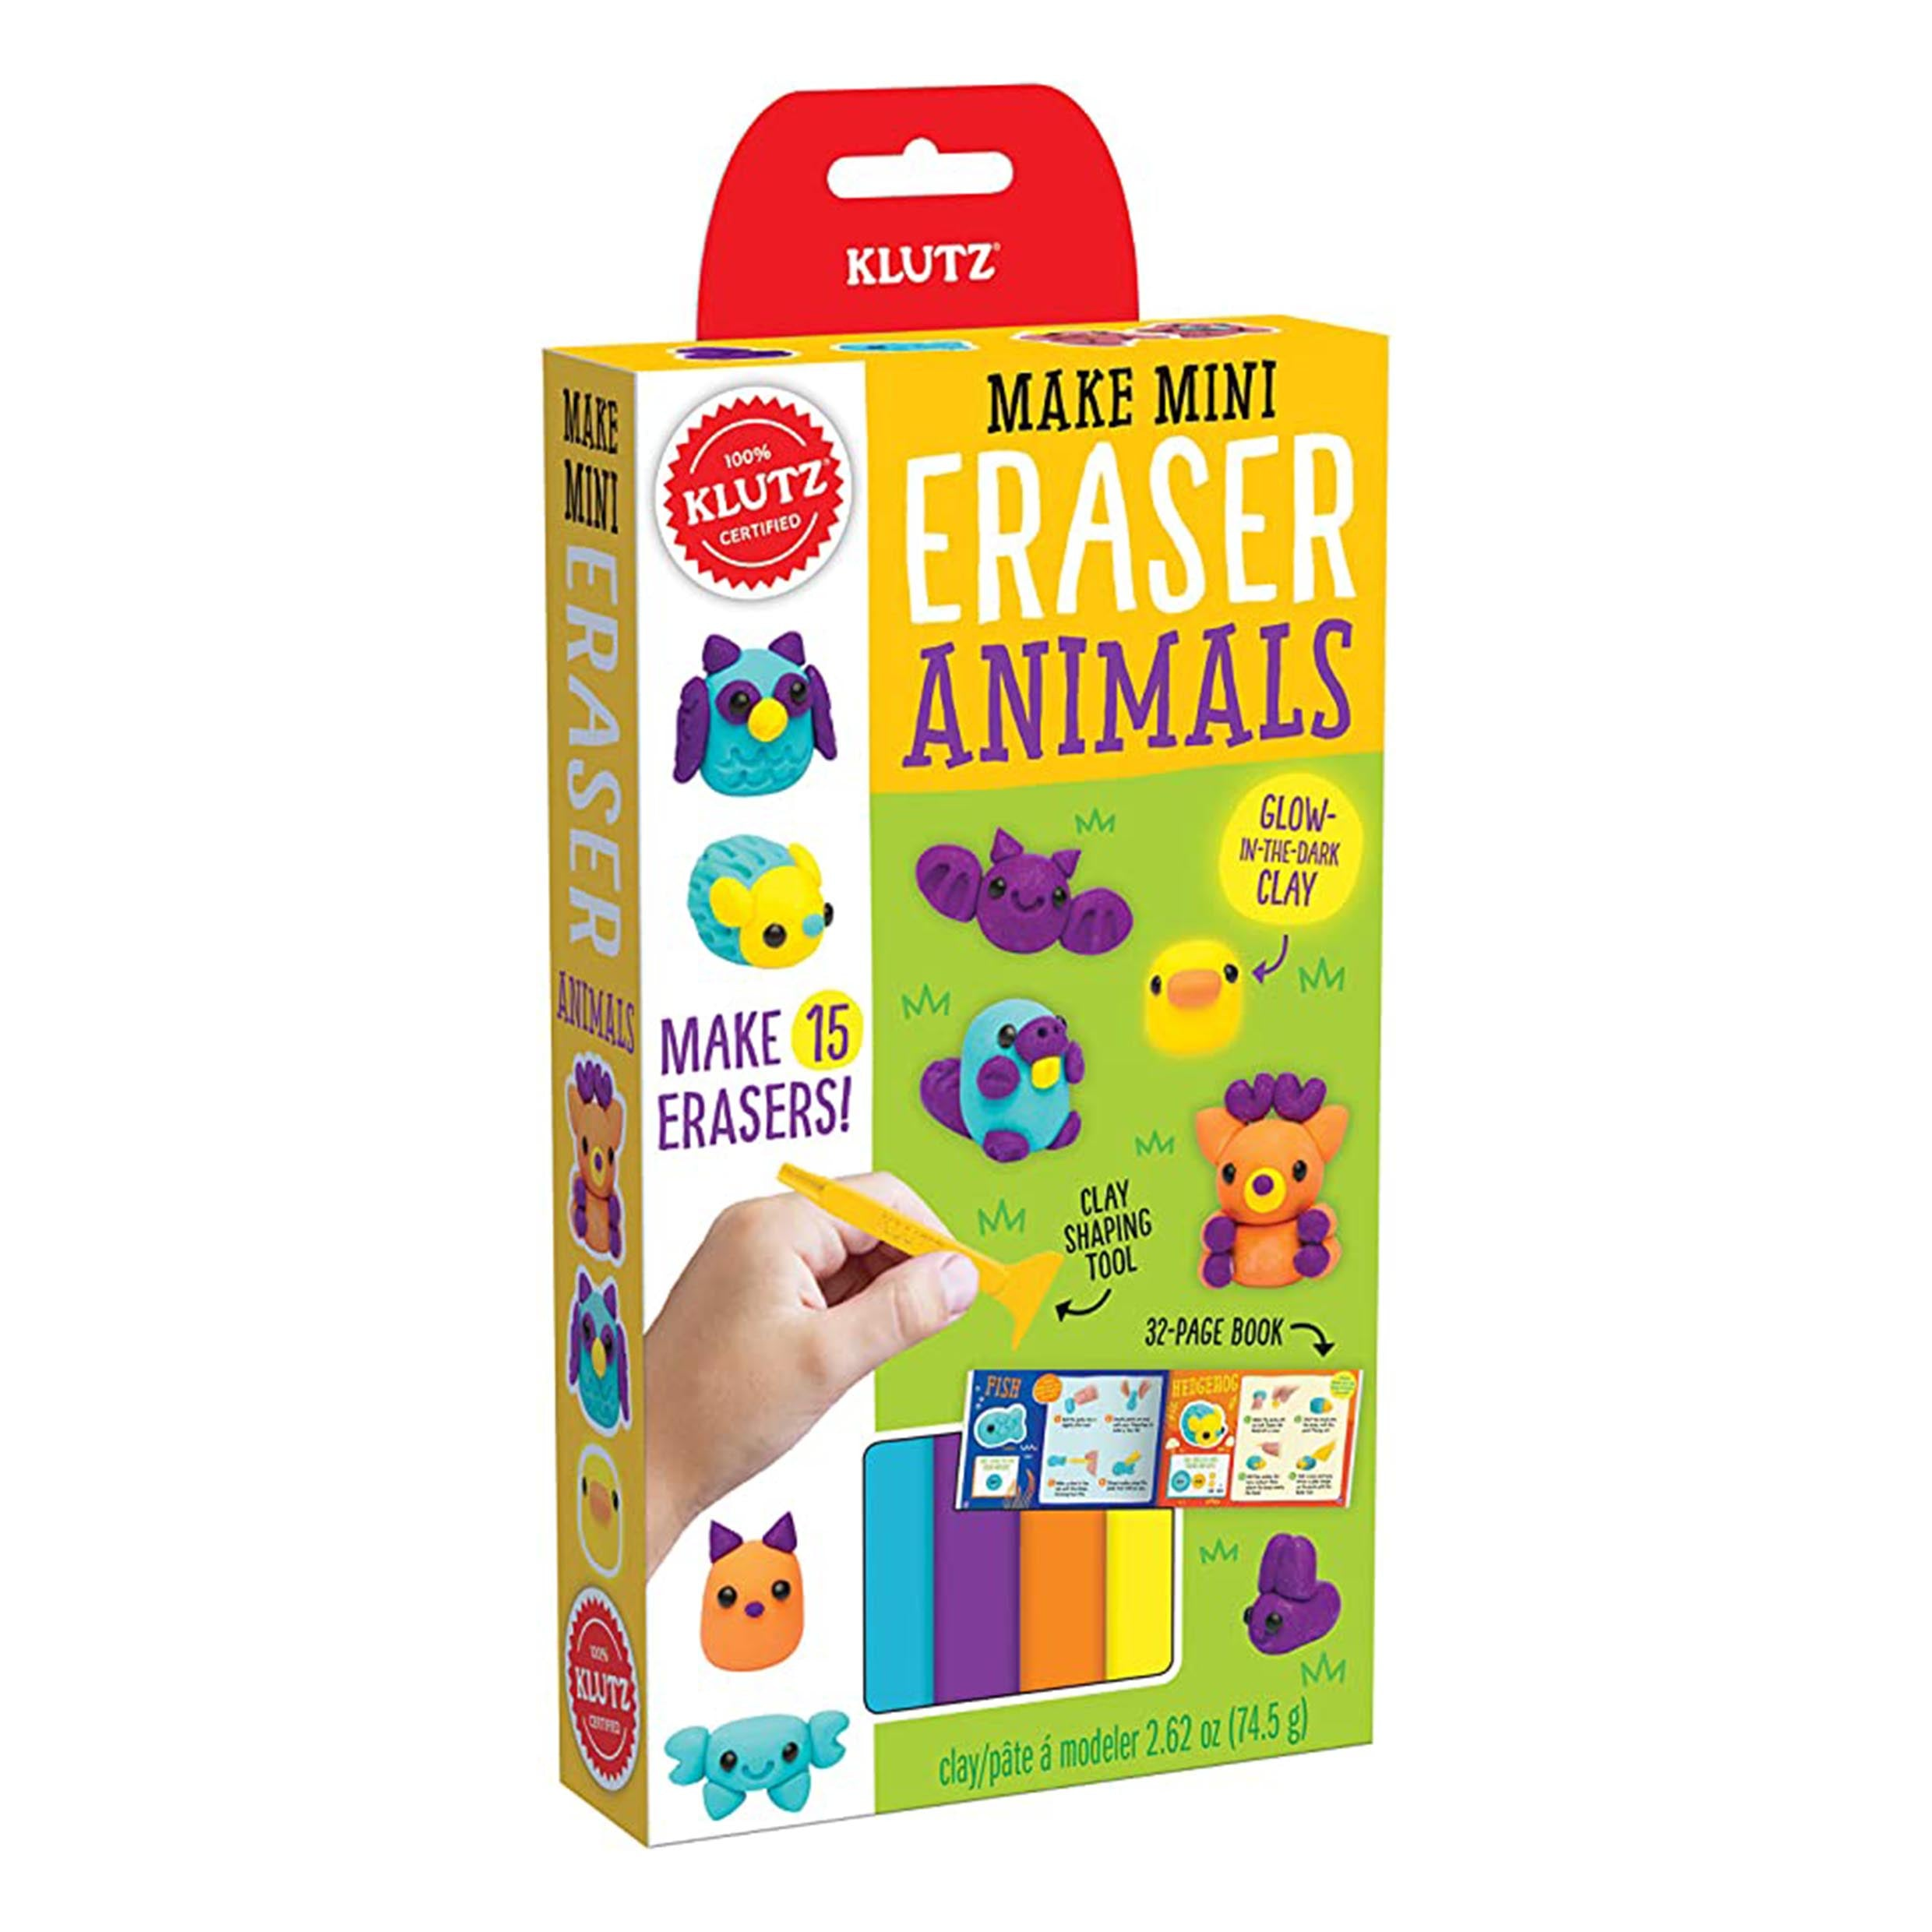 Make Mini Eraser Kits - Animals by Klutz - K. A. Artist Shop